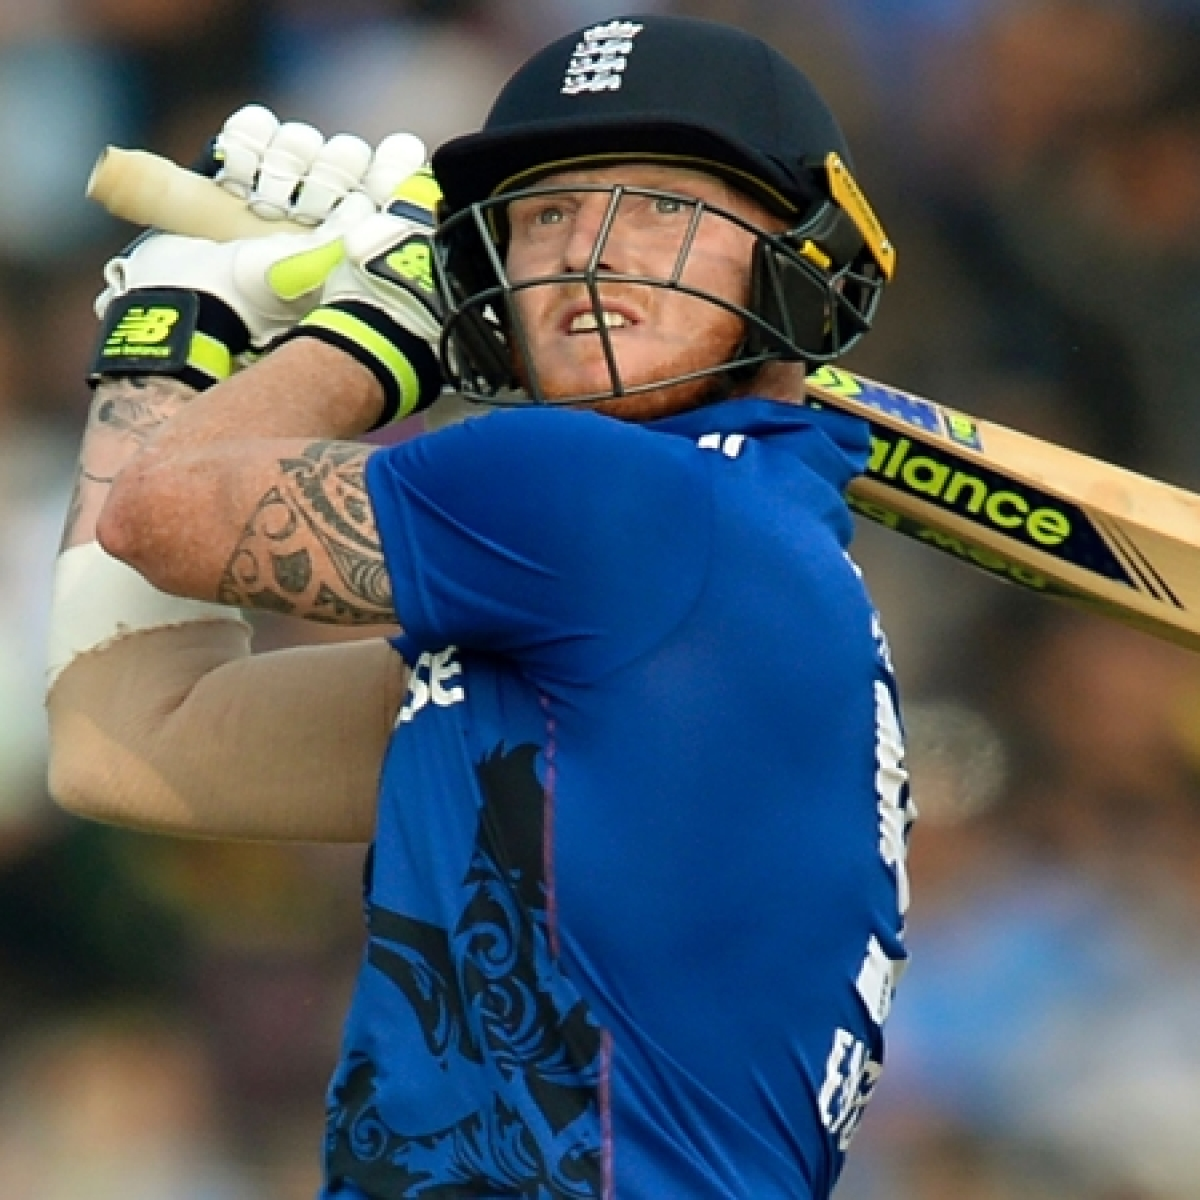 Did Ben Stokes really ask umpires to cancer four overthrows during World Cup 2019 final? Here's the truth